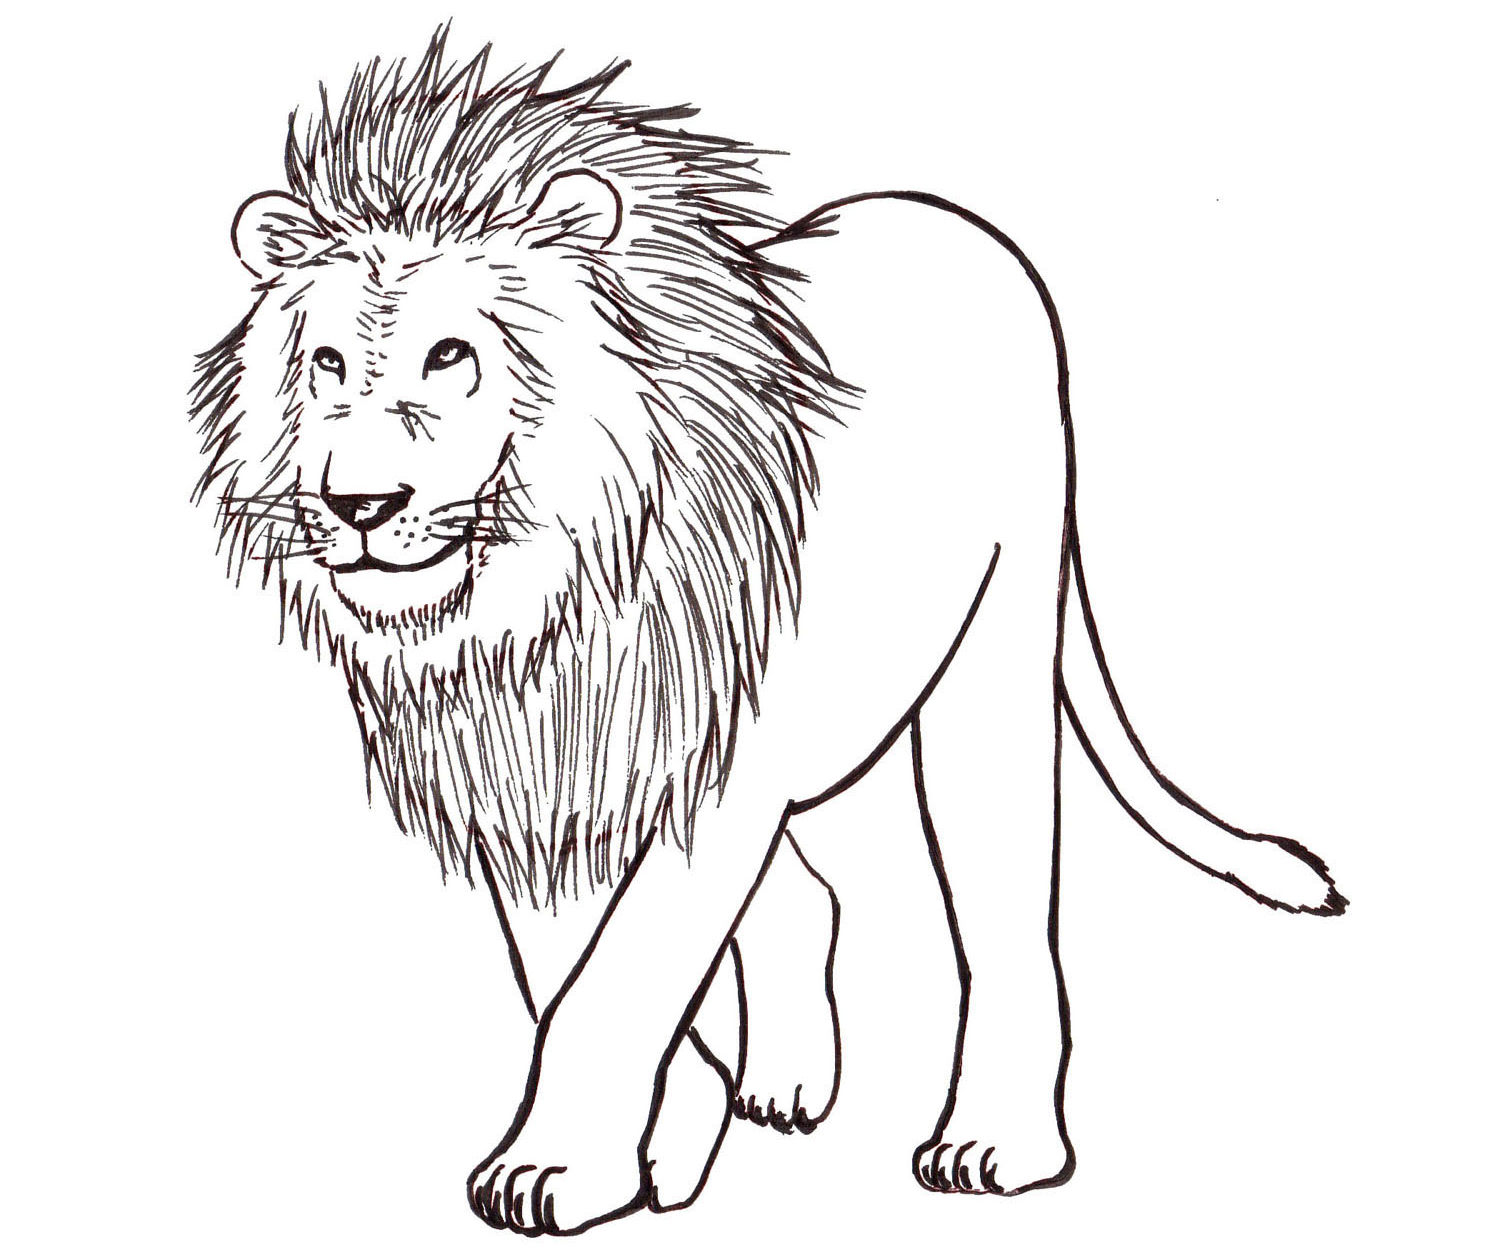 How to Draw a Lion: Step by Step - Liron Yanconsky